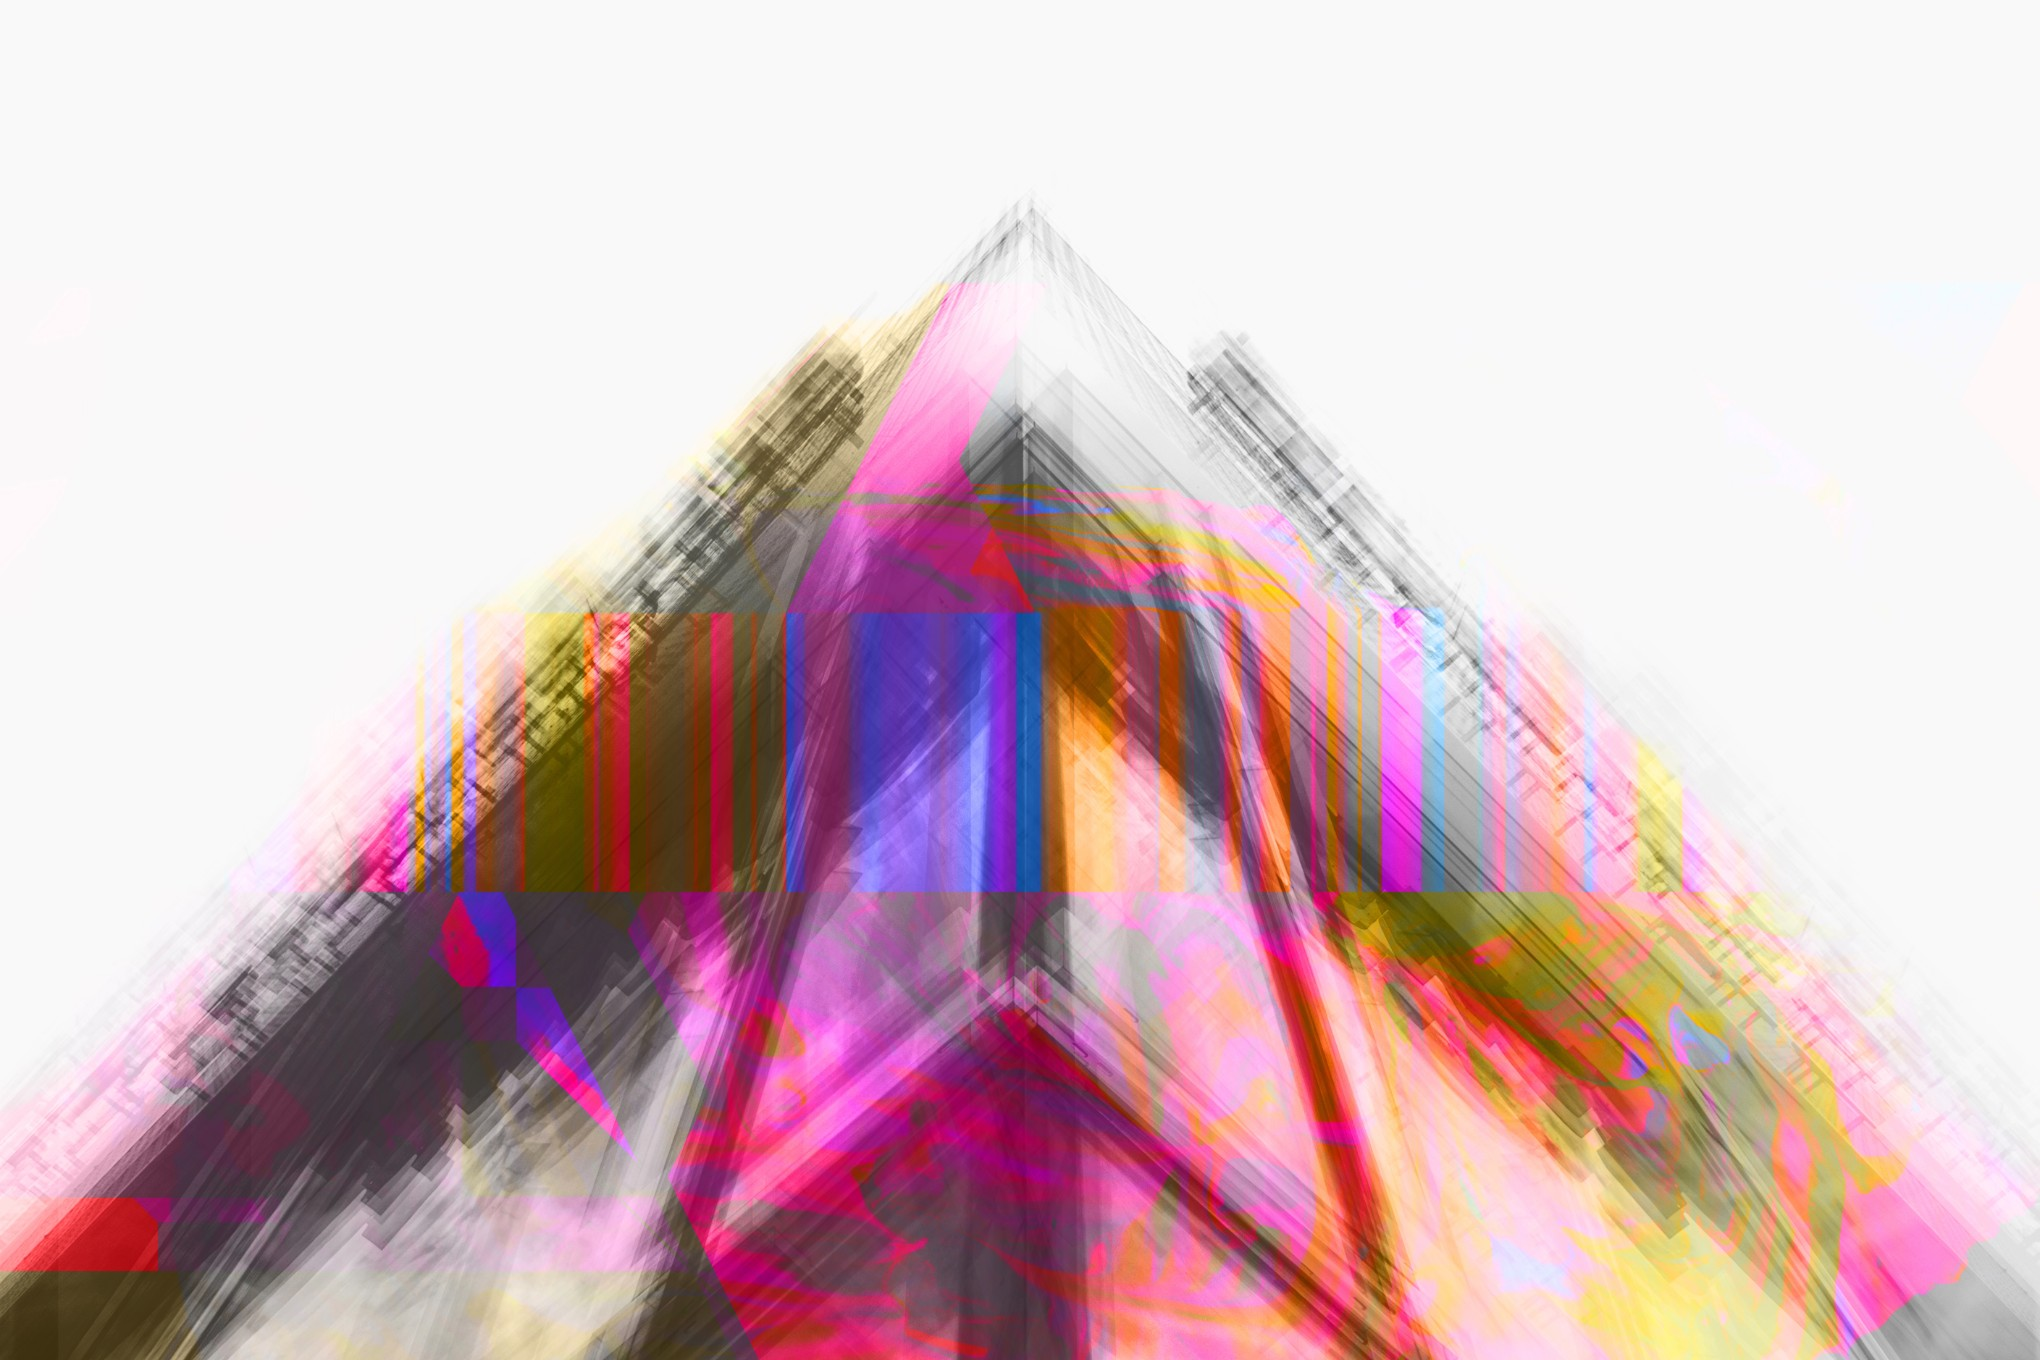 Abstract Architecture Art by Scott Webb of London Ontario